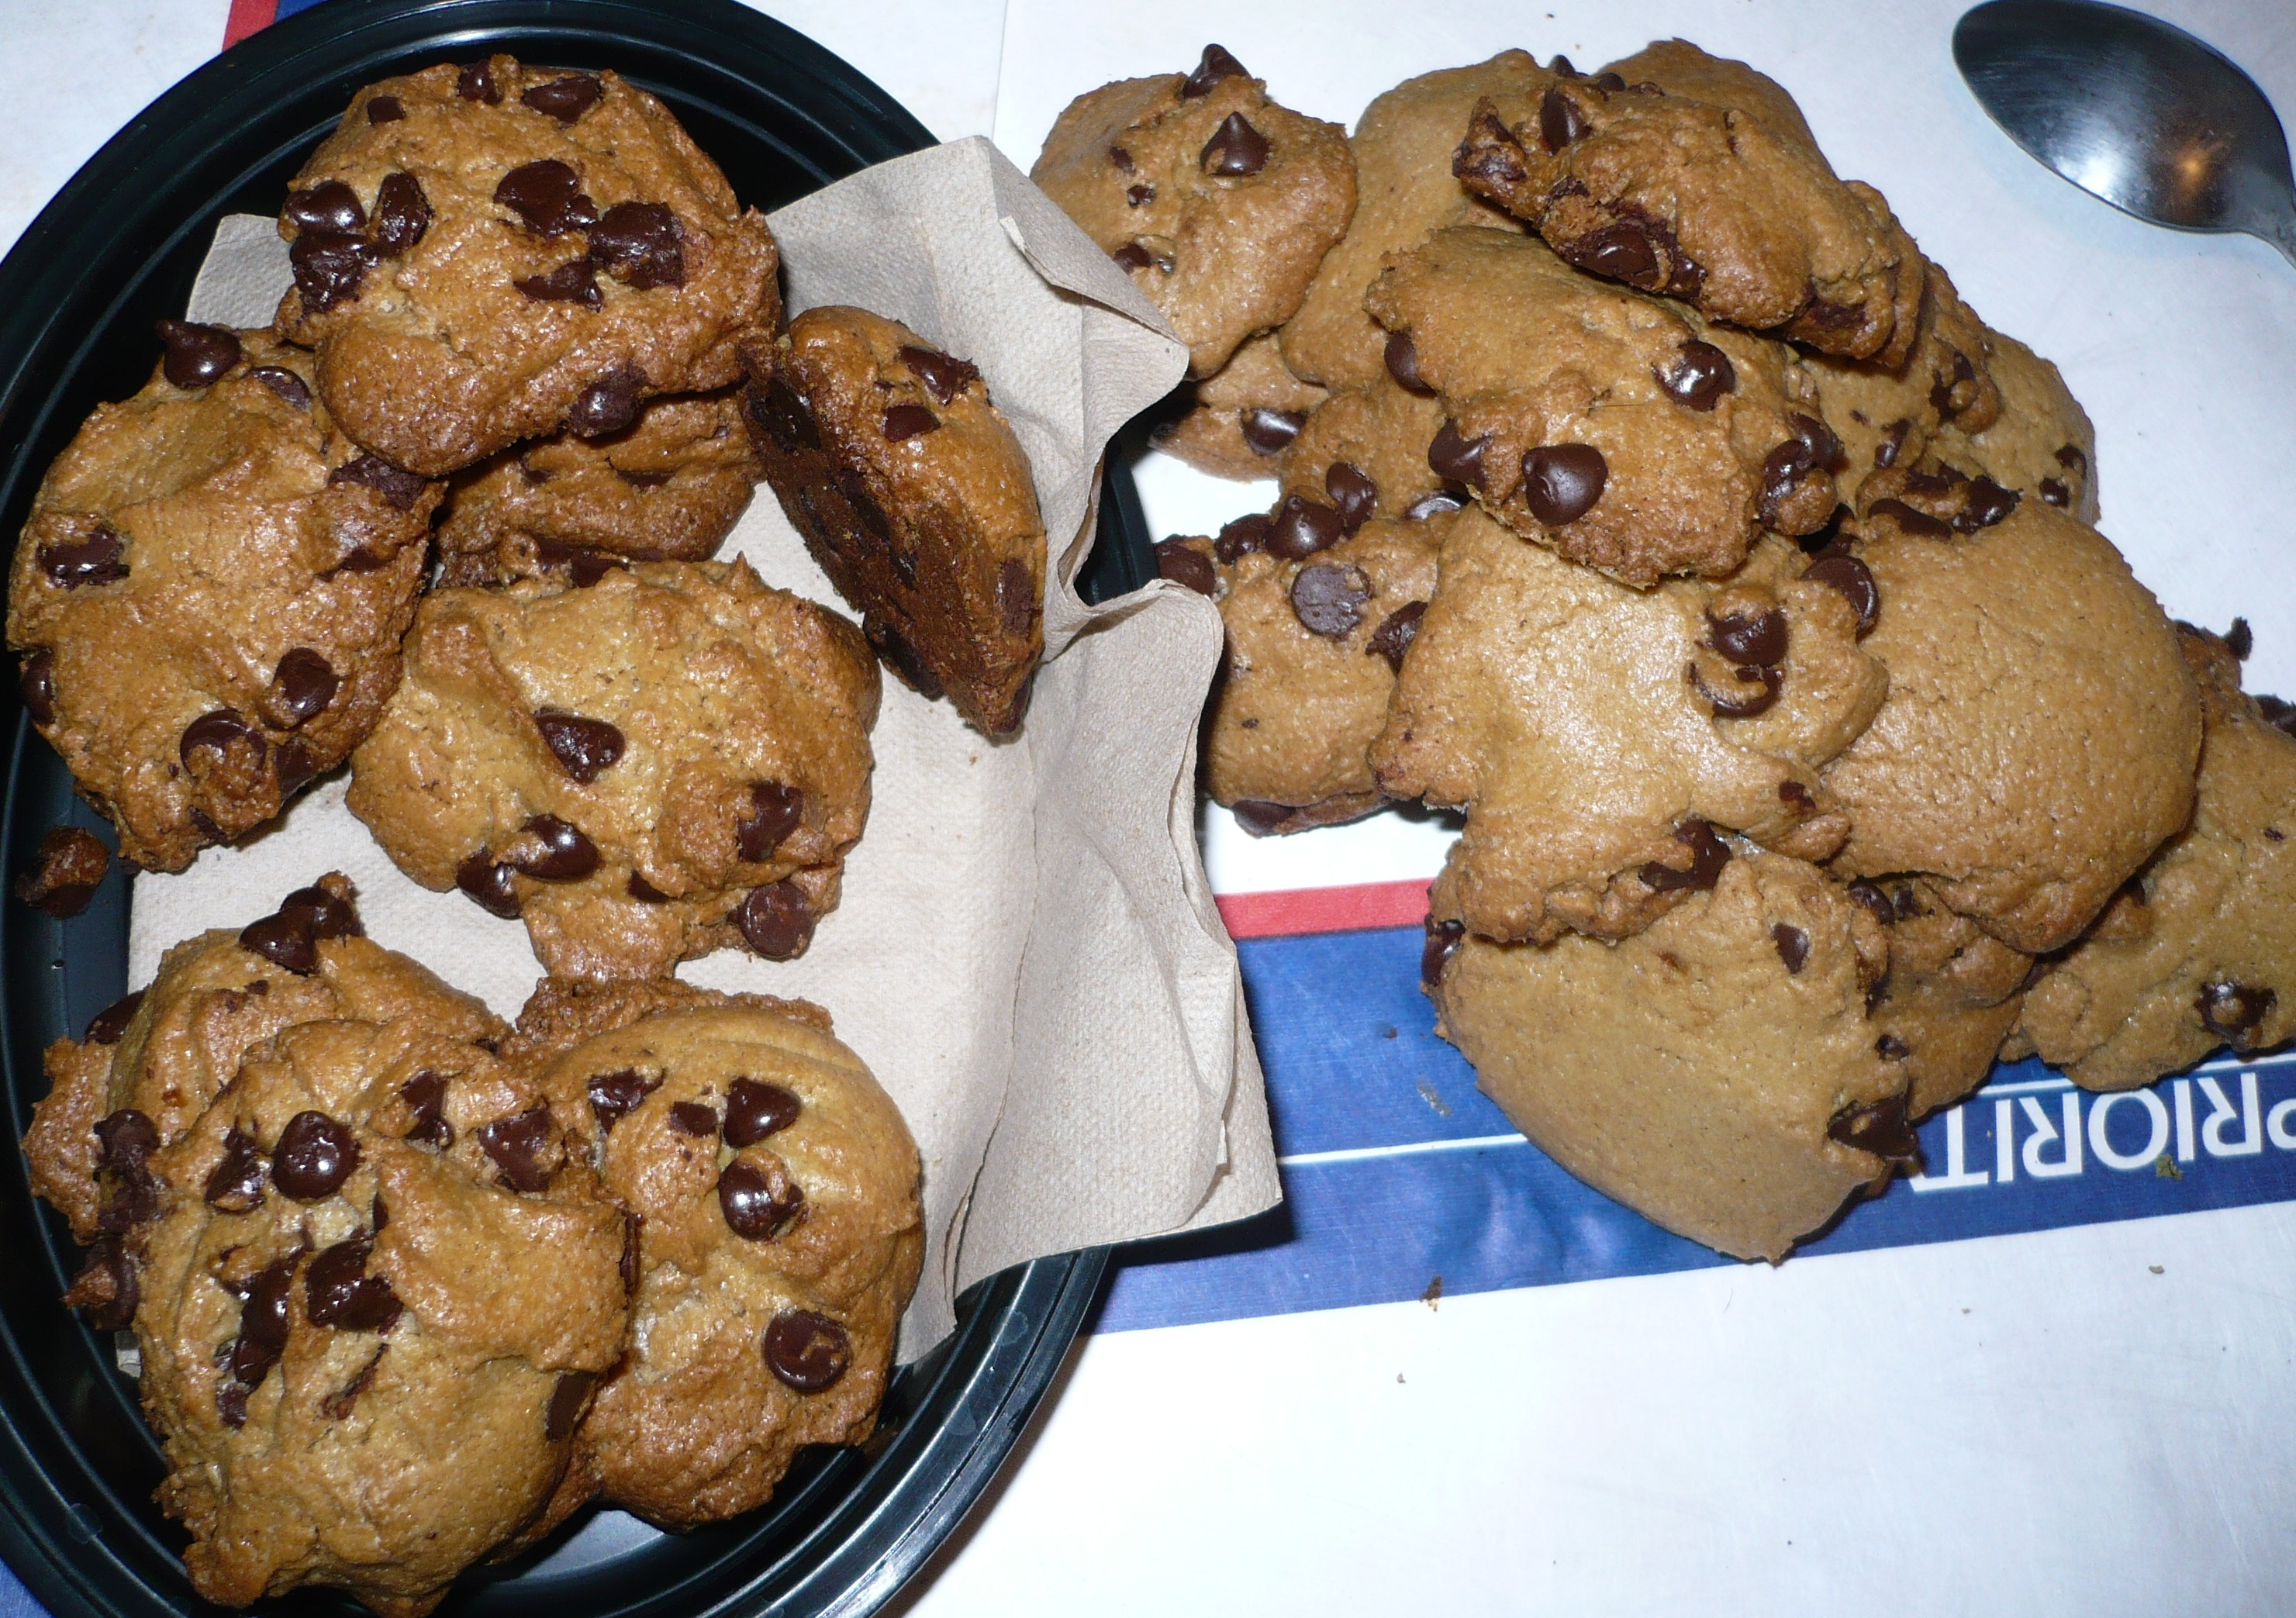 Best Cannabutter Chocolate Chip Cookies